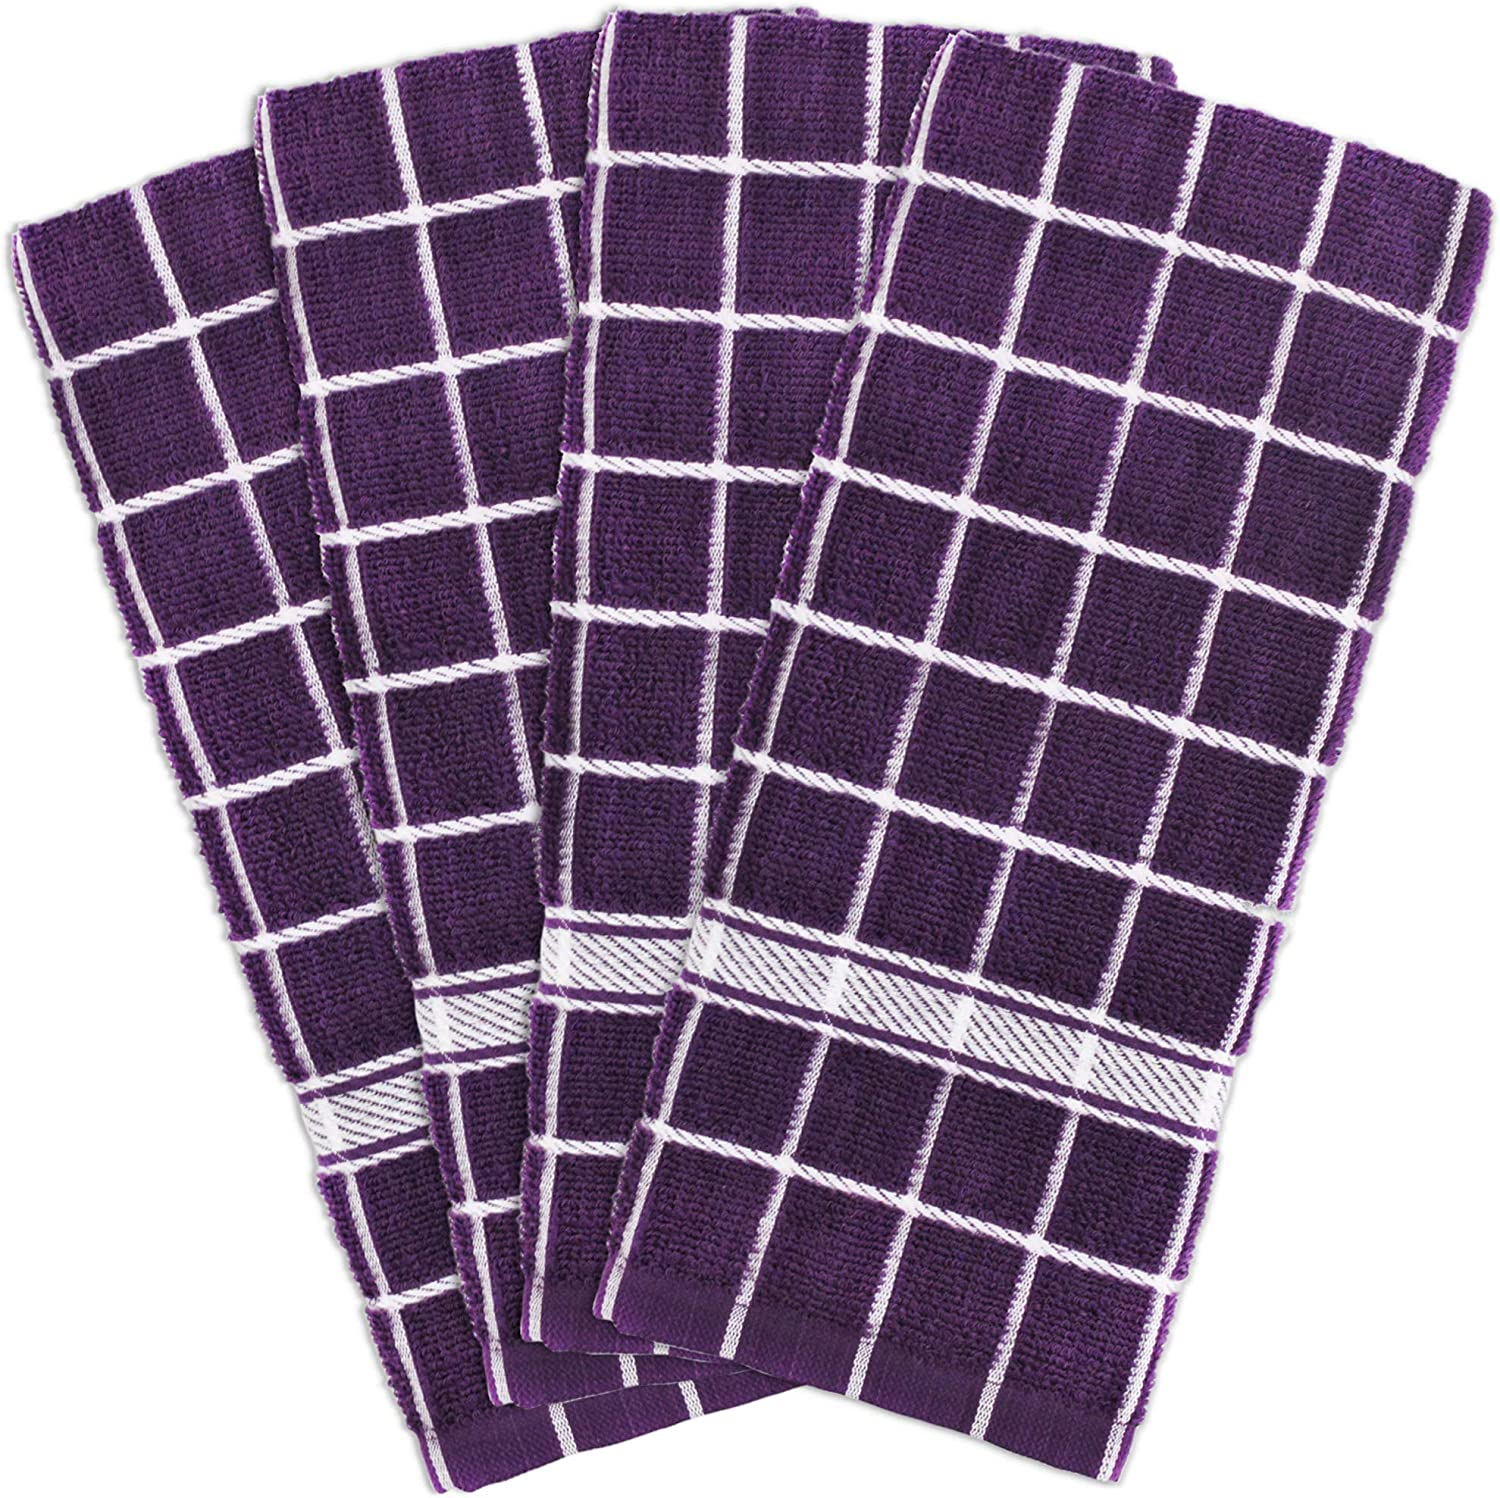 """DII Cotton Terry Windowpane Dish Towels, 16 x 26"""" Set of 4, Machine Washable and Ultra Absorbent Kitchen Bar Towels-Eggplant Check"""